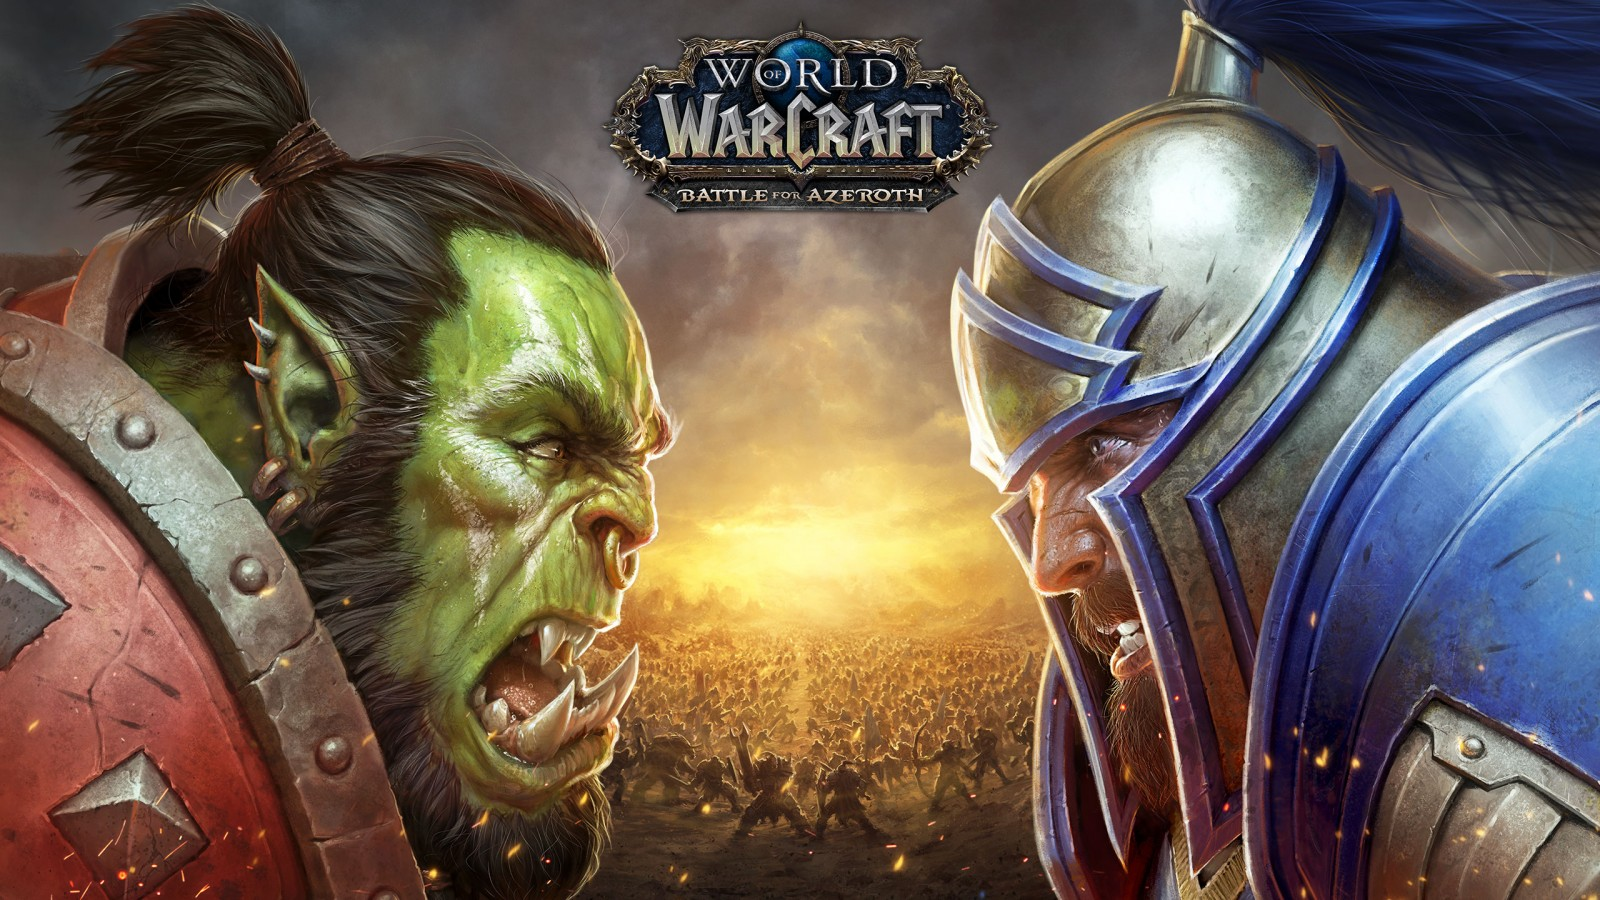 Latest Wallpapers Cars And Bikes World Of Warcraft Battle For Azeroth 2018 Wallpapers Hd